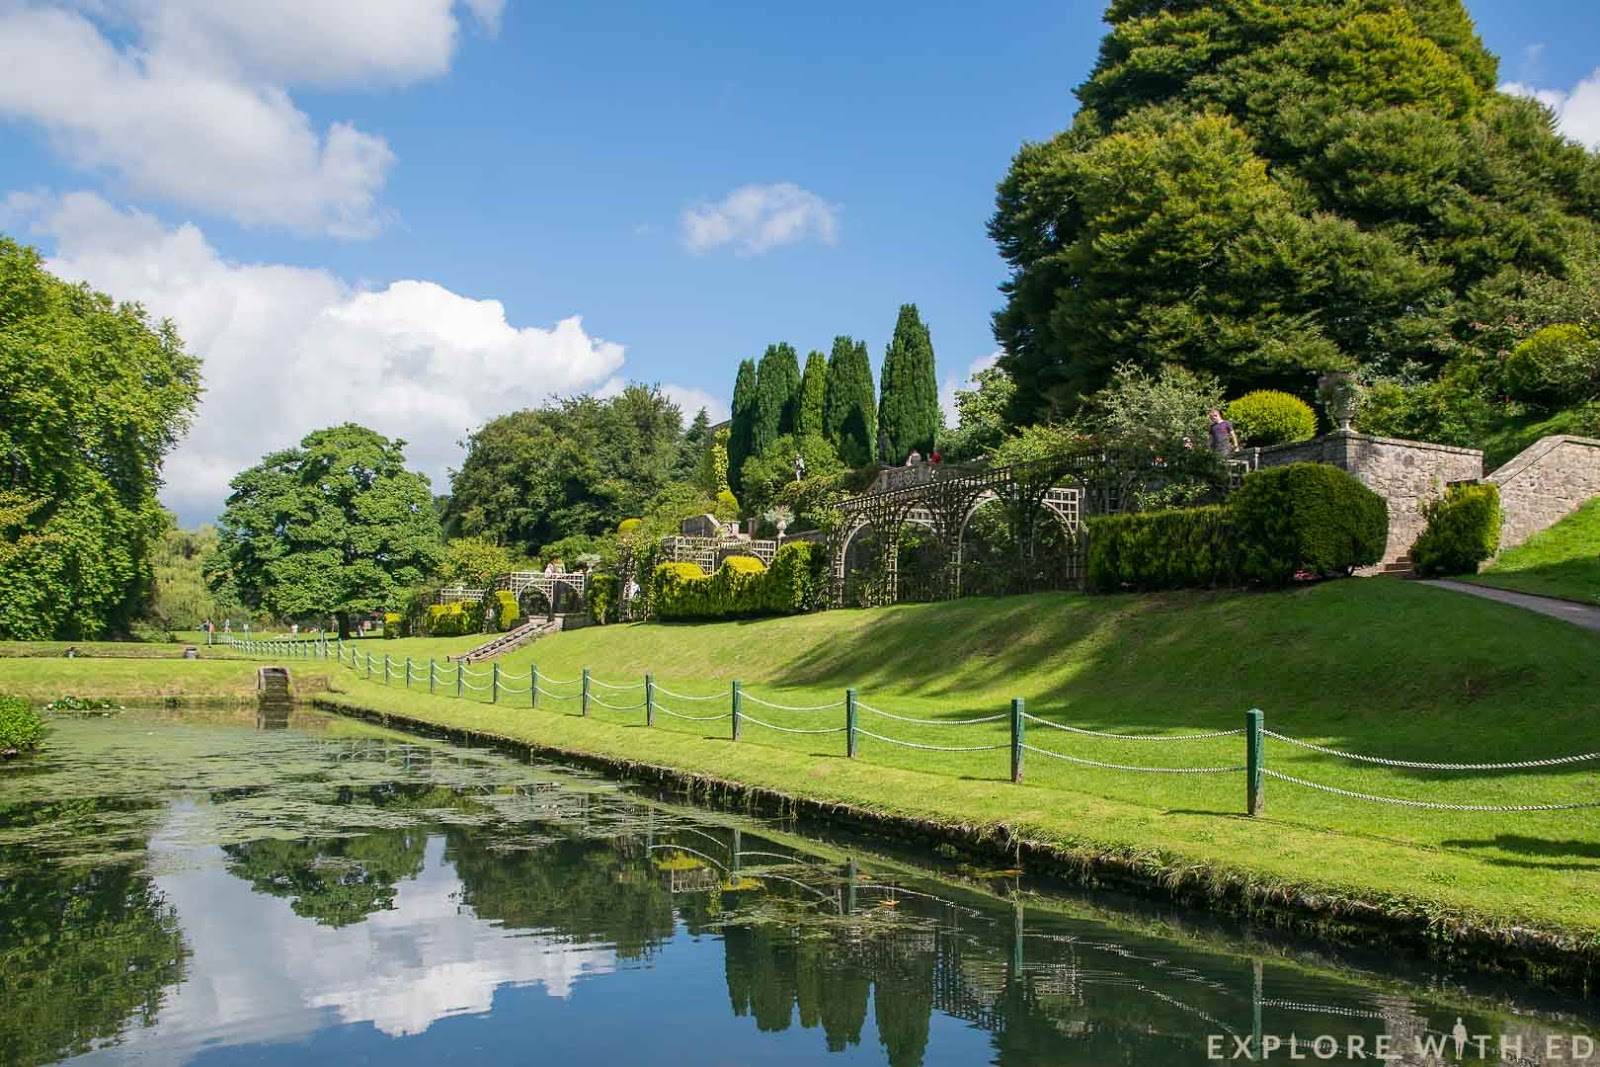 St Fagans in Cardiff